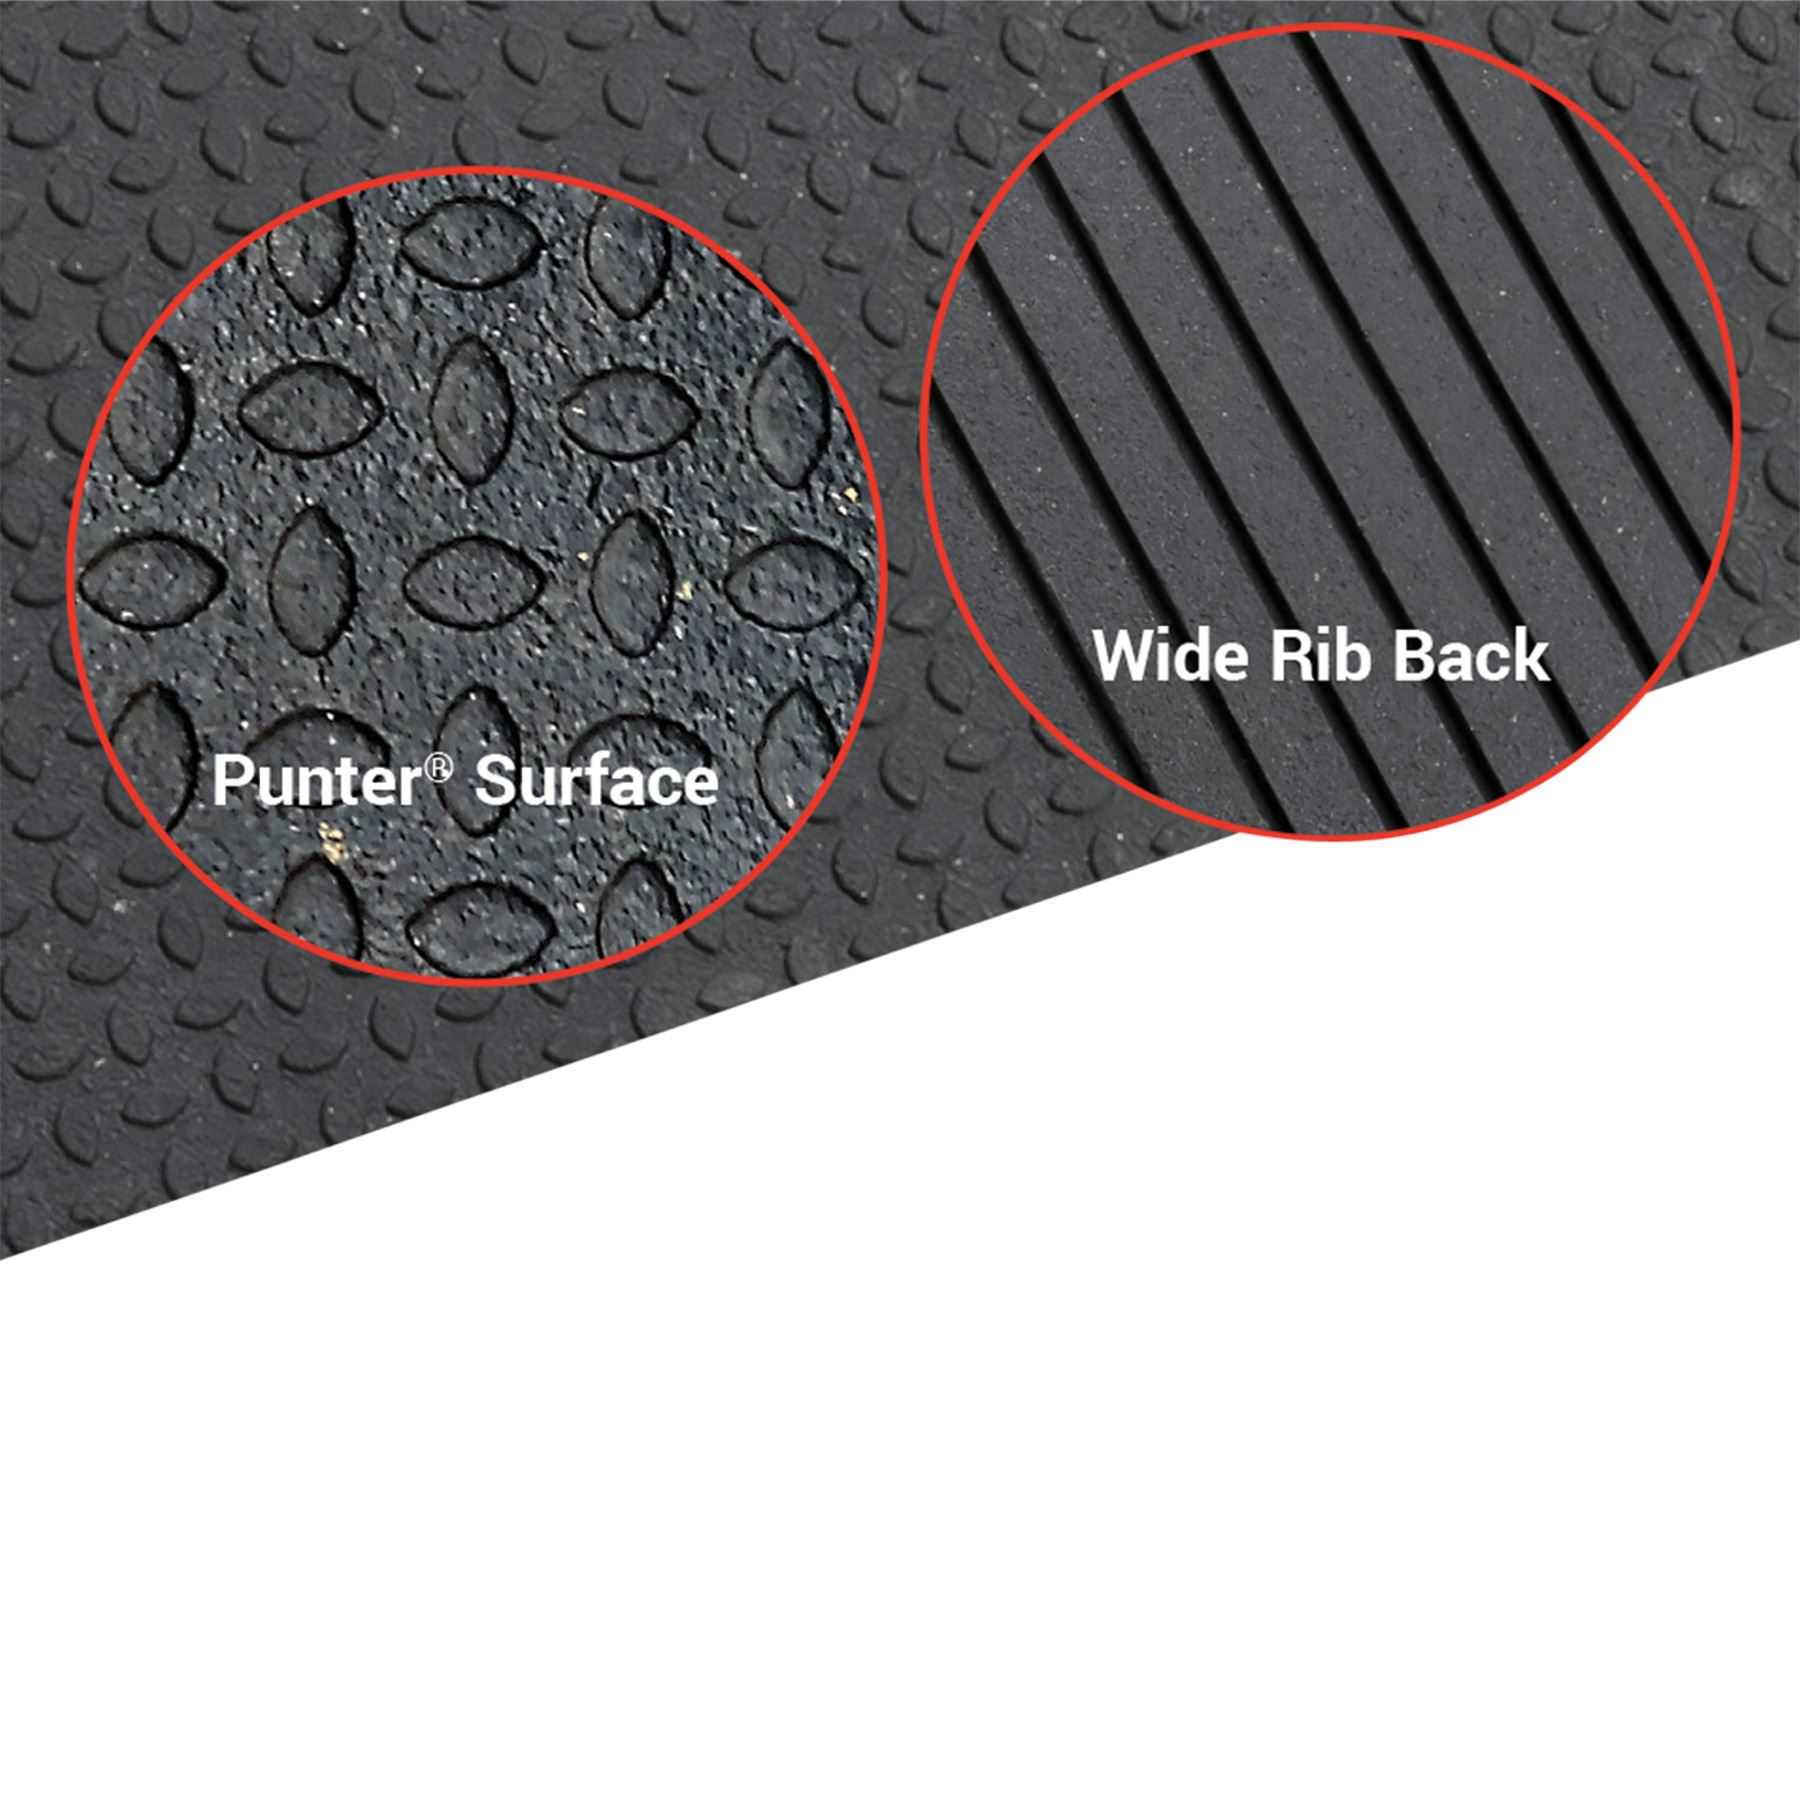 Smooth or Diamond Surface Rubber Mat Flooring 4 x 6 x 3//4 for Gym or Equine Stall Non-Slip Indestructible Heaviest Duty The Standard